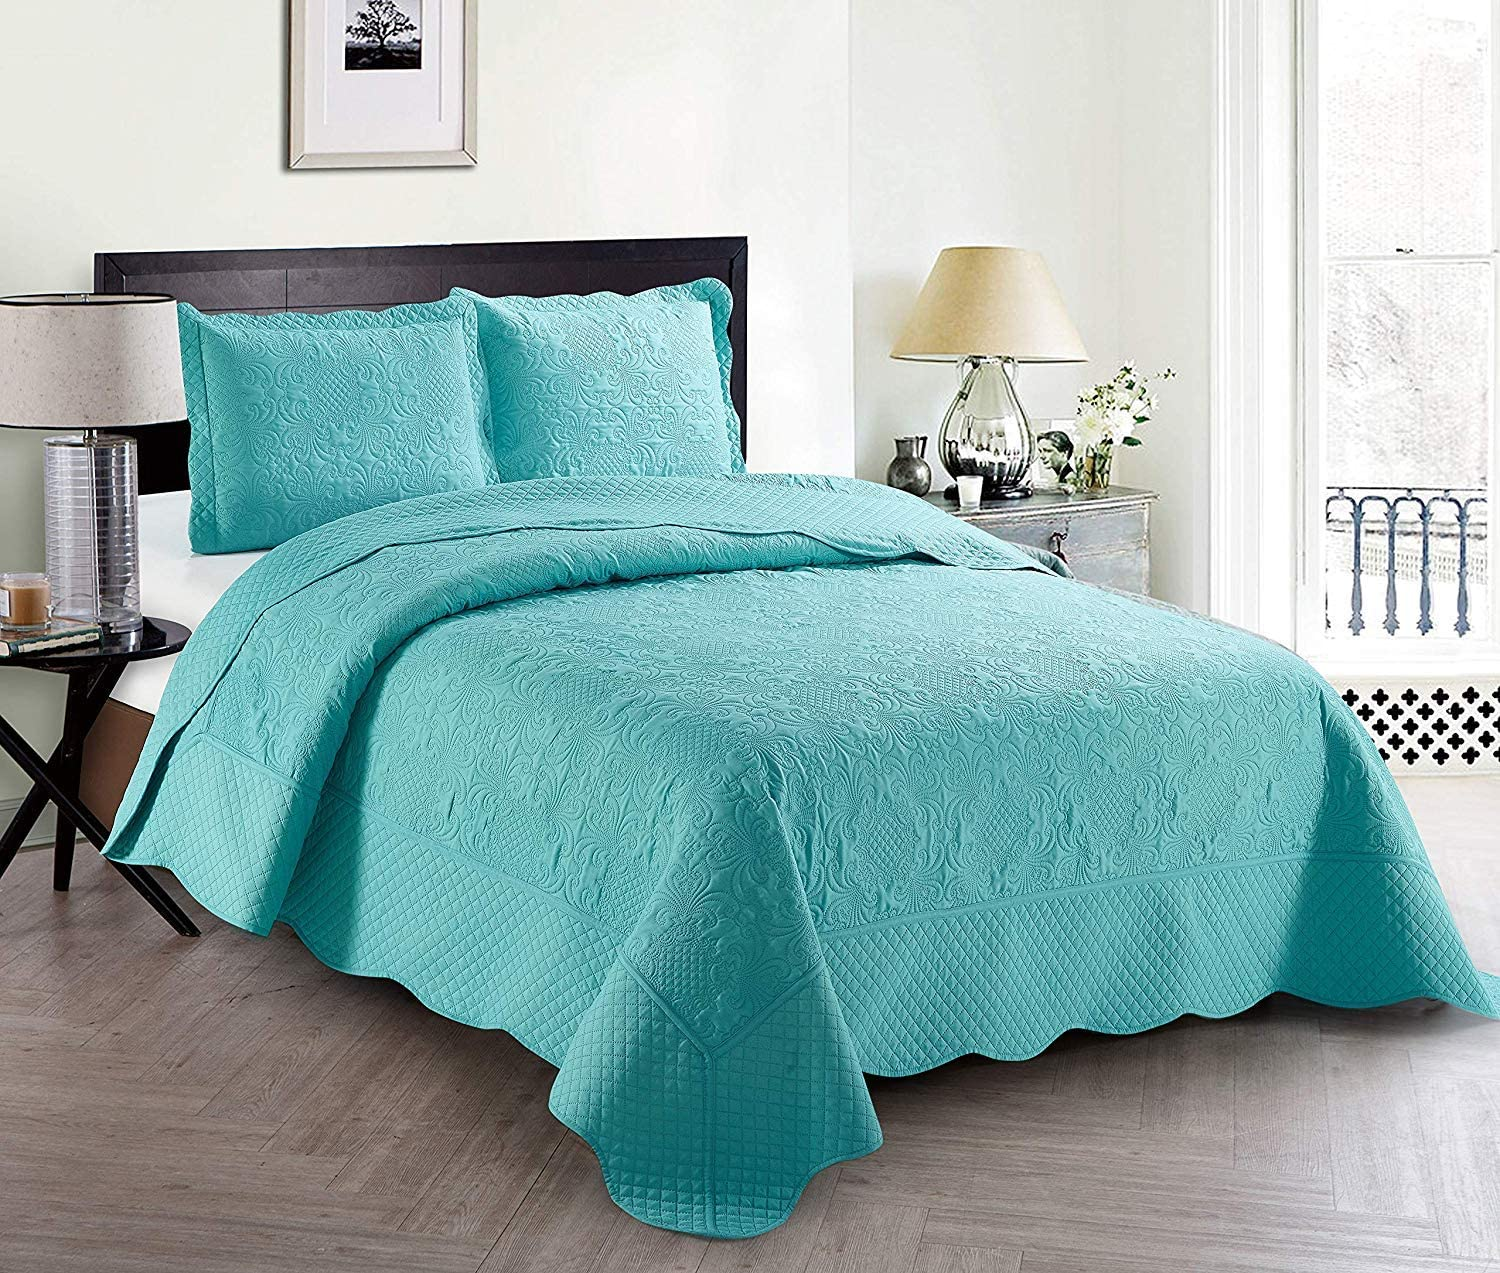 Full//Queen, Light Blue Better Home Style 3 Piece Luxury Ultrasonic Embossed Solid Quilt Coverlet Bedspread Oversized Bed Cover Set # Veronica